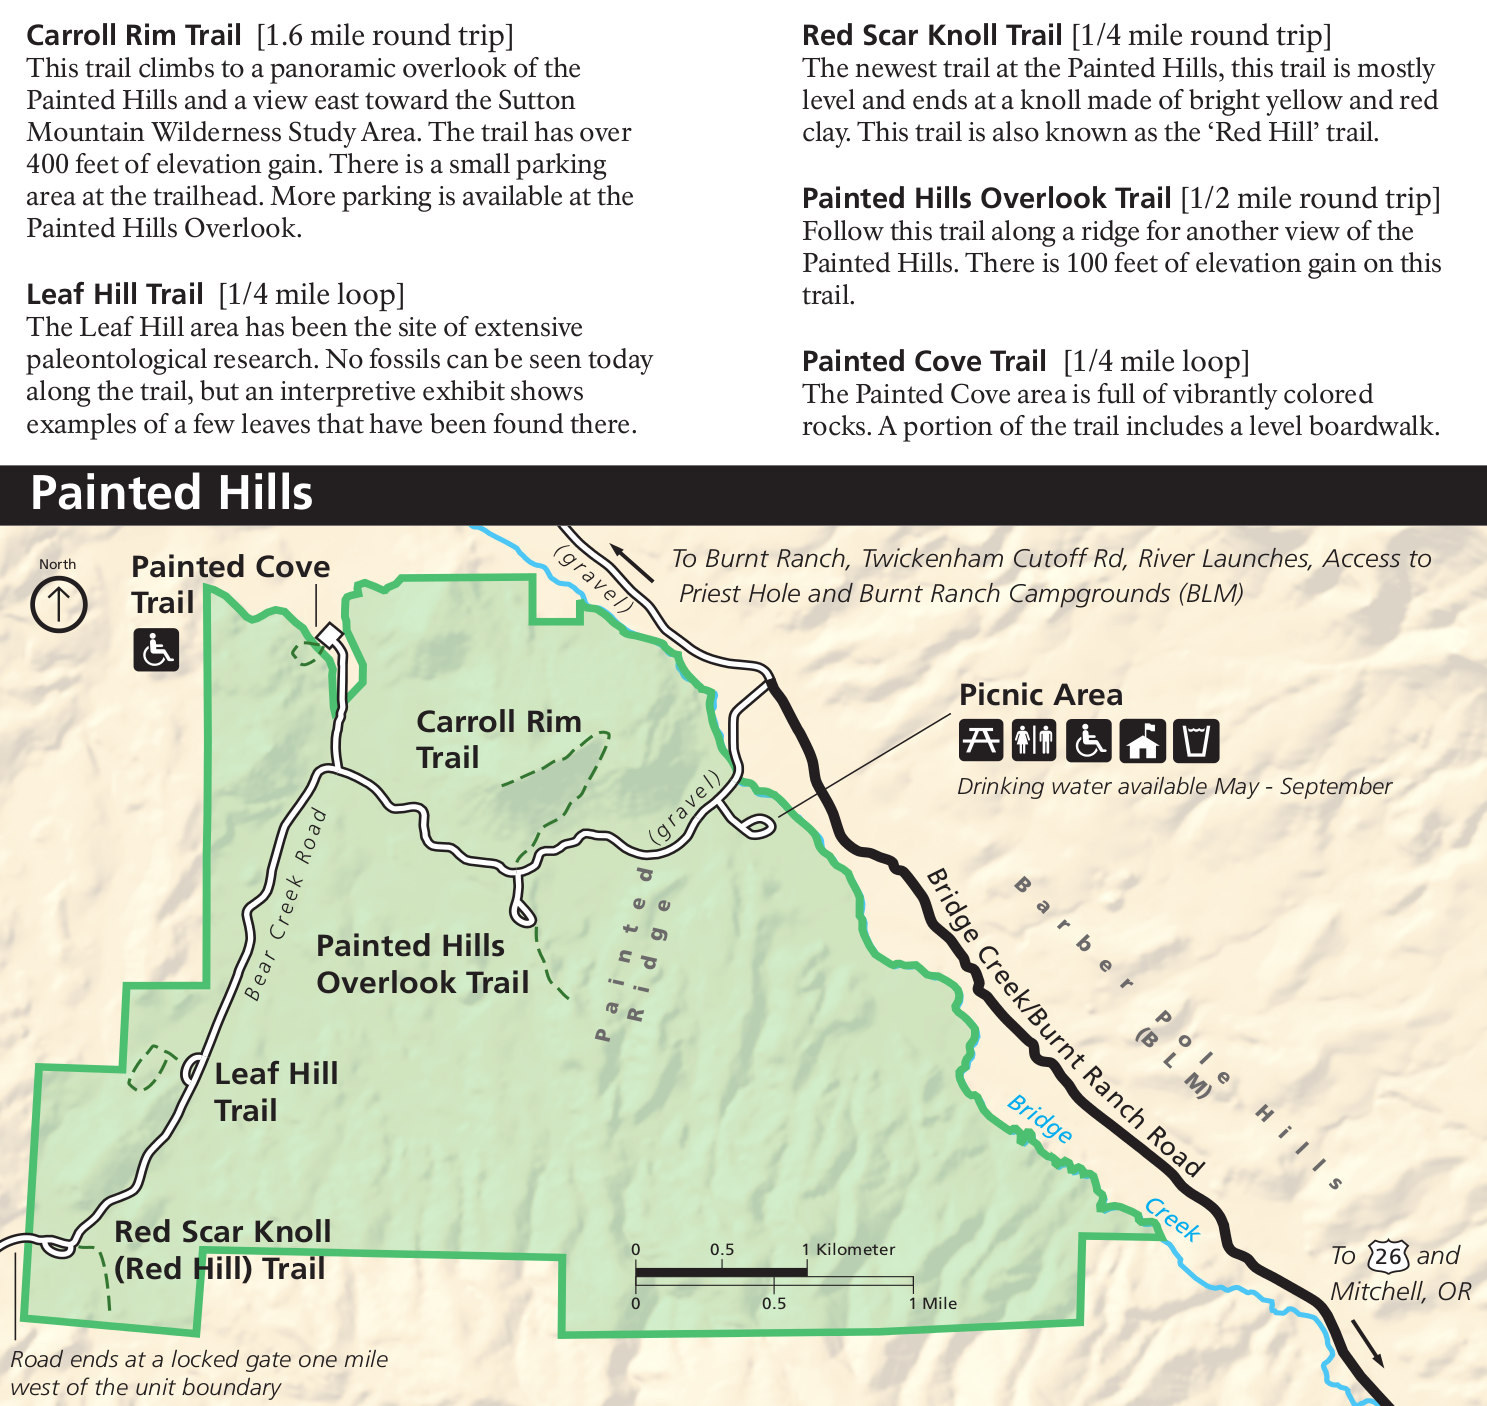 file:nps john-day-fossil-beds-painted-hills-trail-map